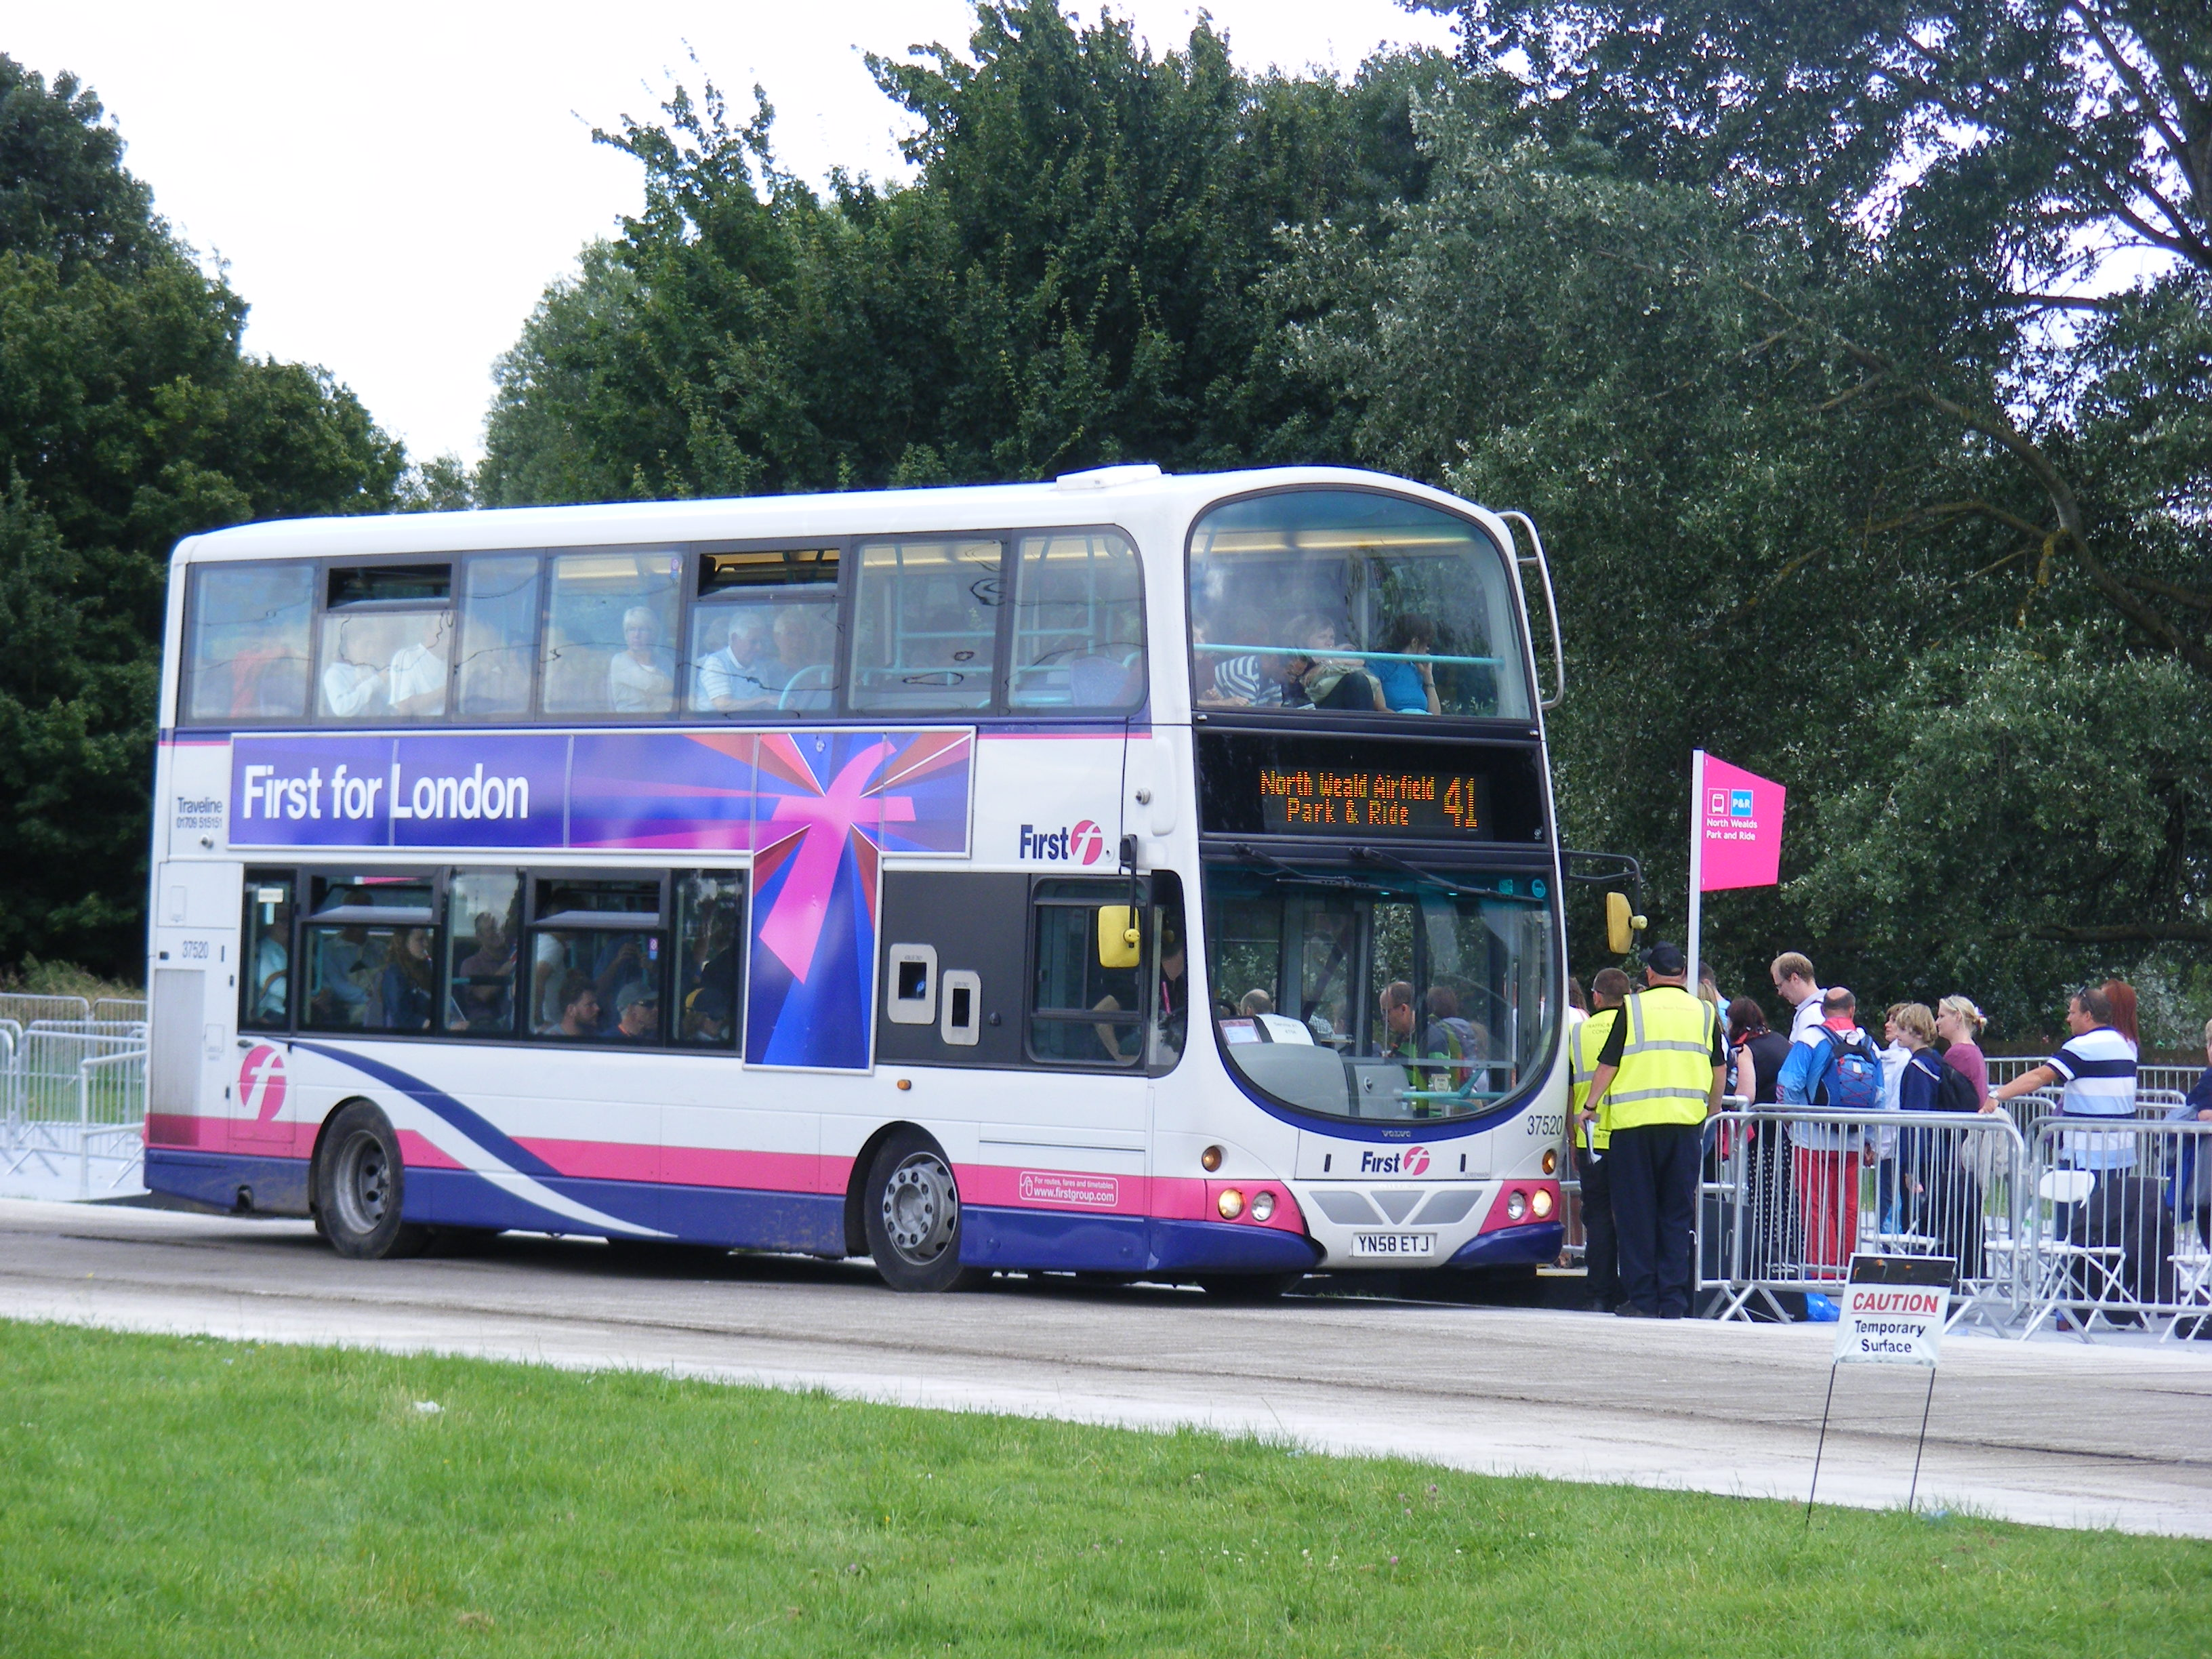 Filefirst South Yorkshire Yn Route 41 Park Ride 2012 Olympics